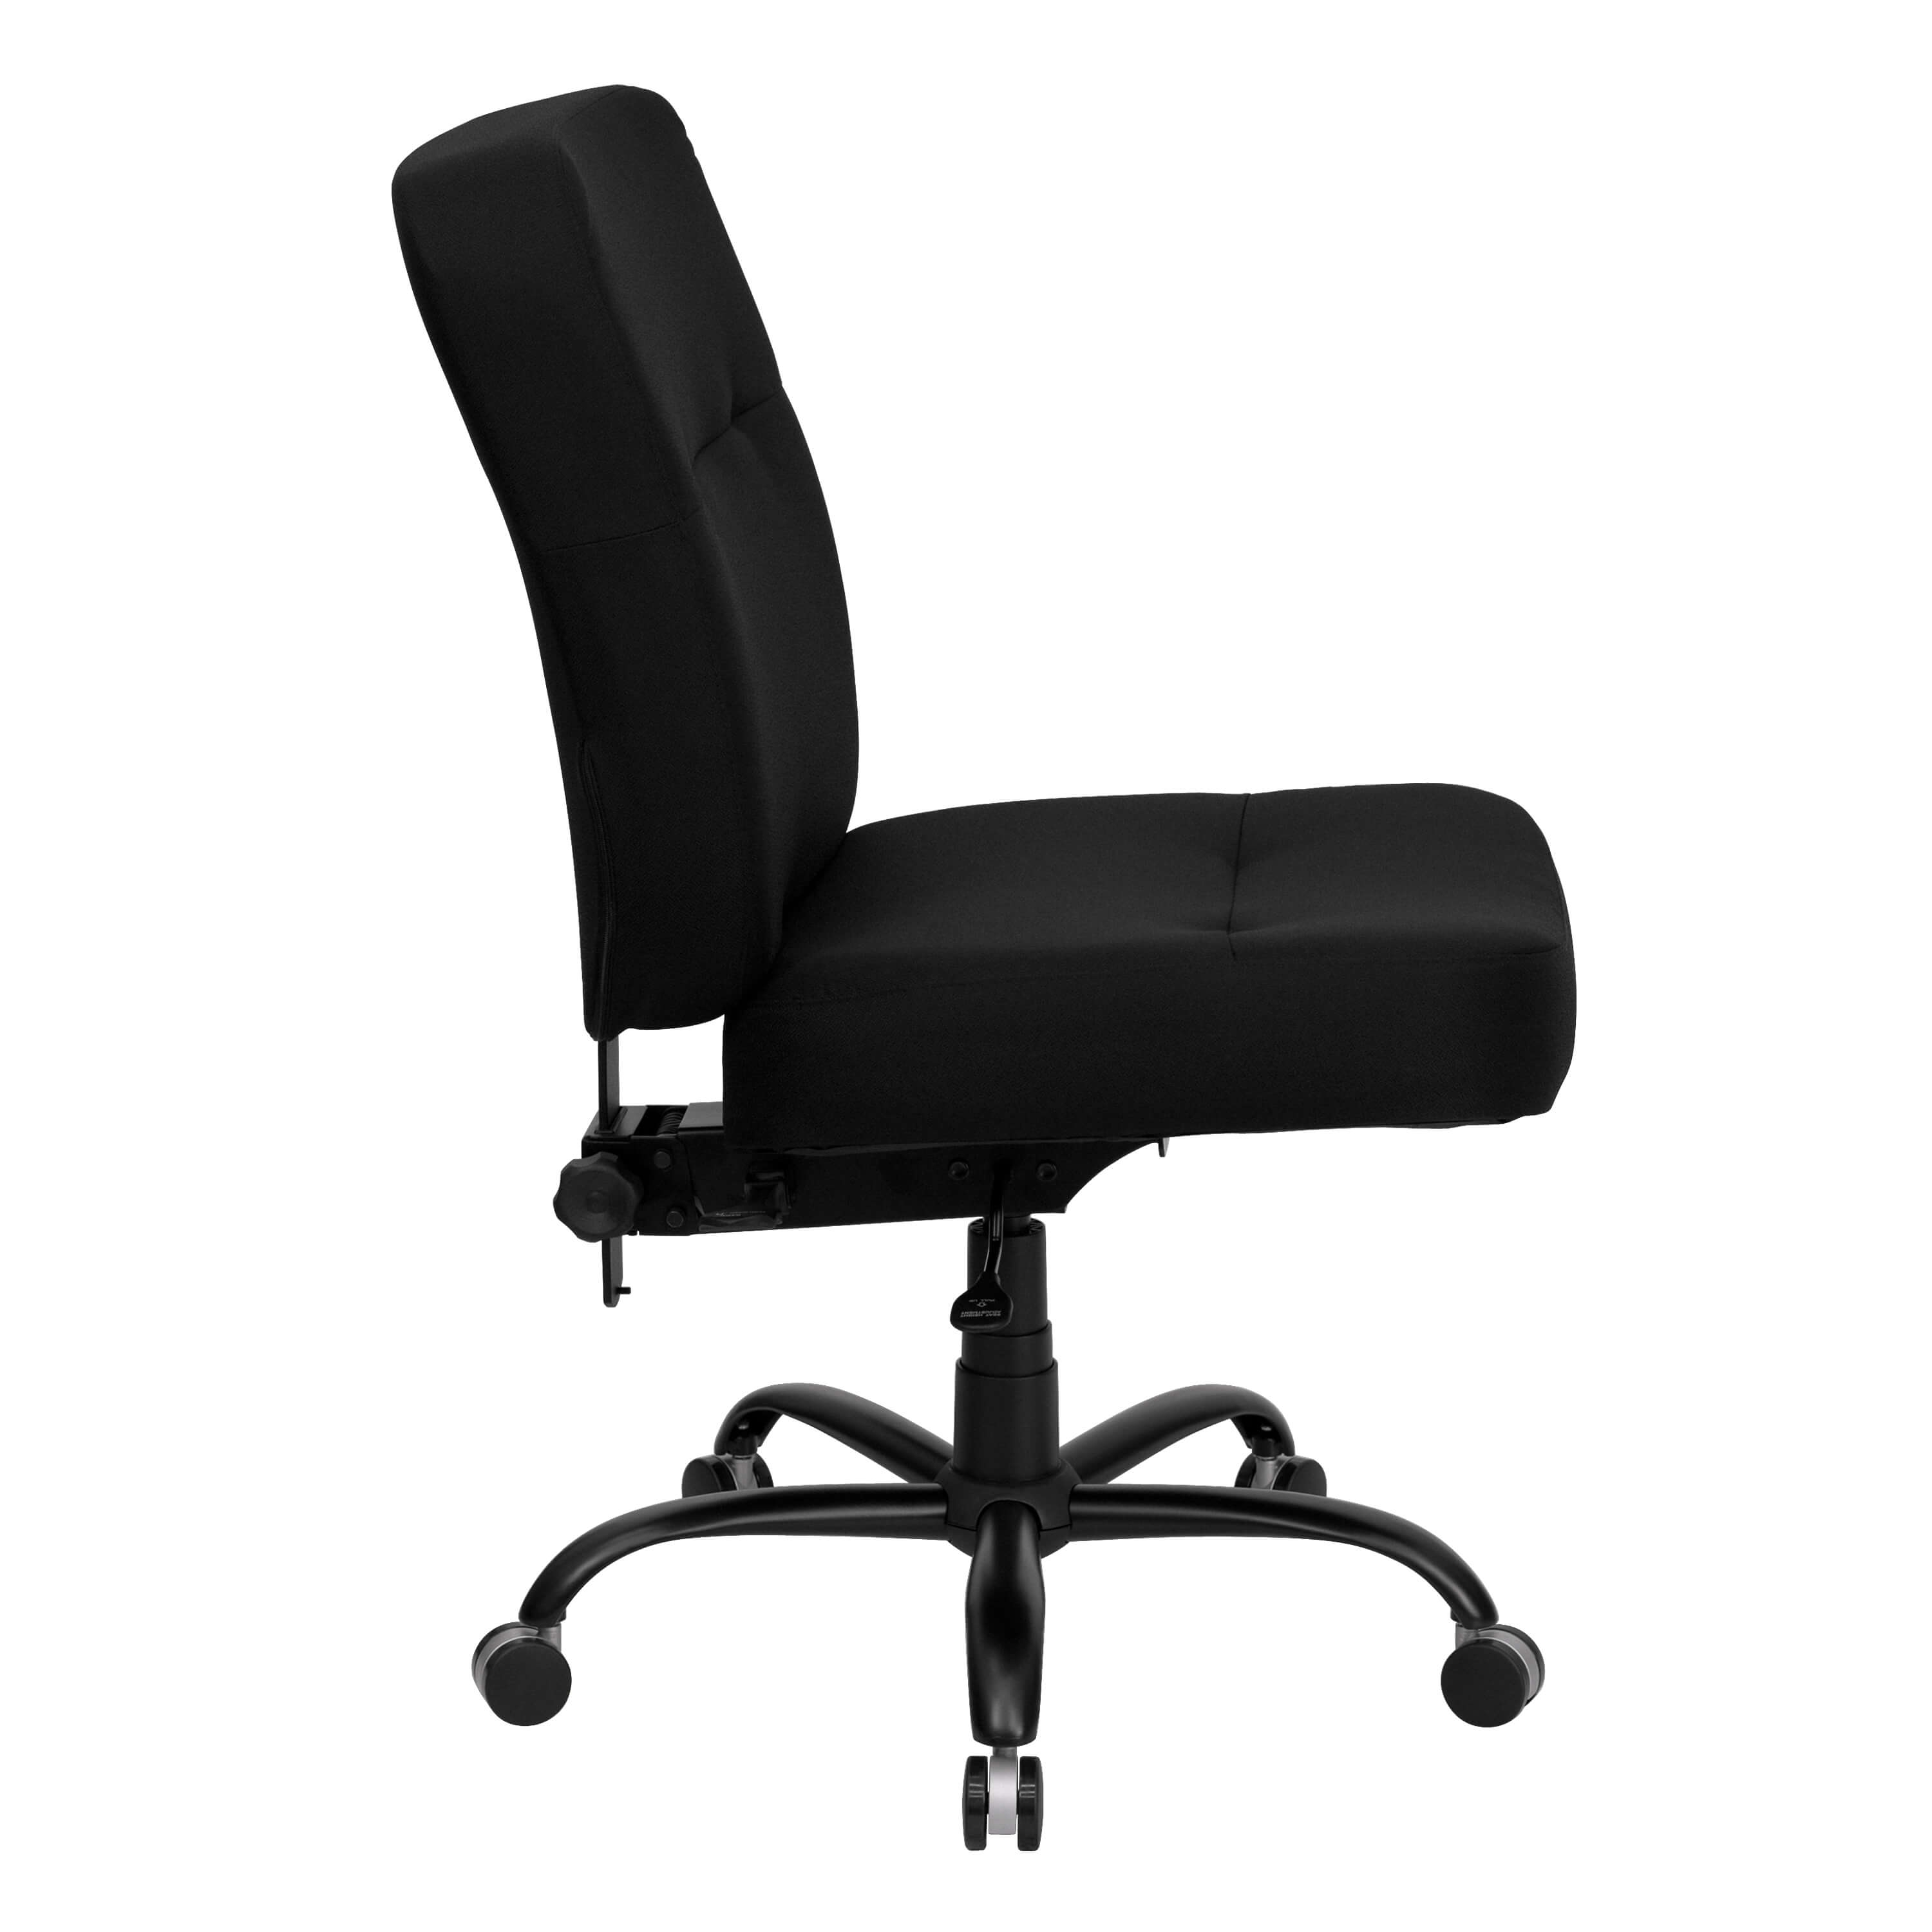 High weight capacity office chair side view